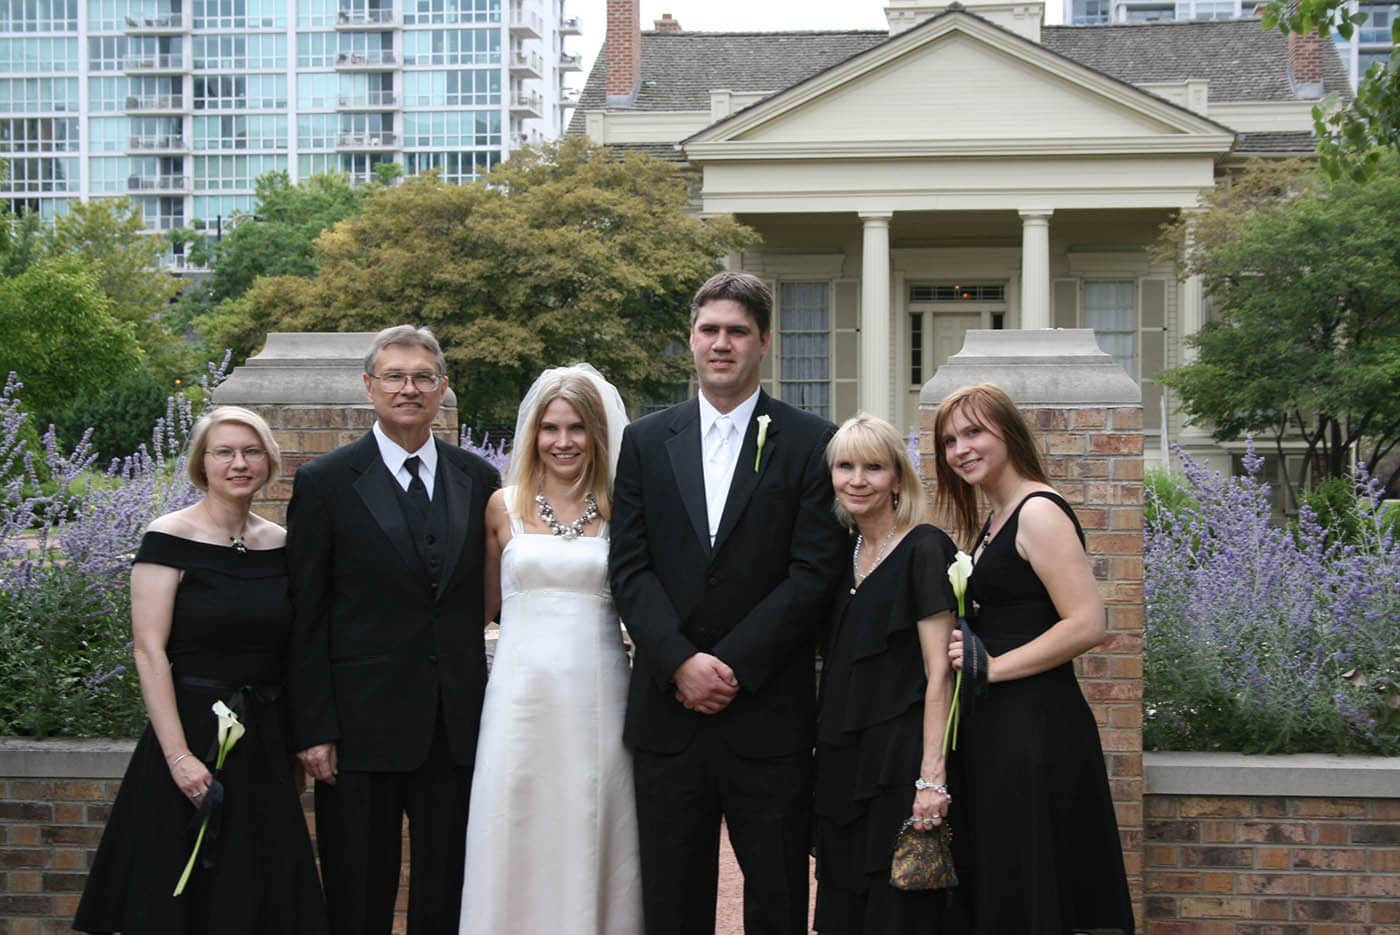 Family picture at Jen and Dale's Glessner House Wedding in Chicago, Illinois.